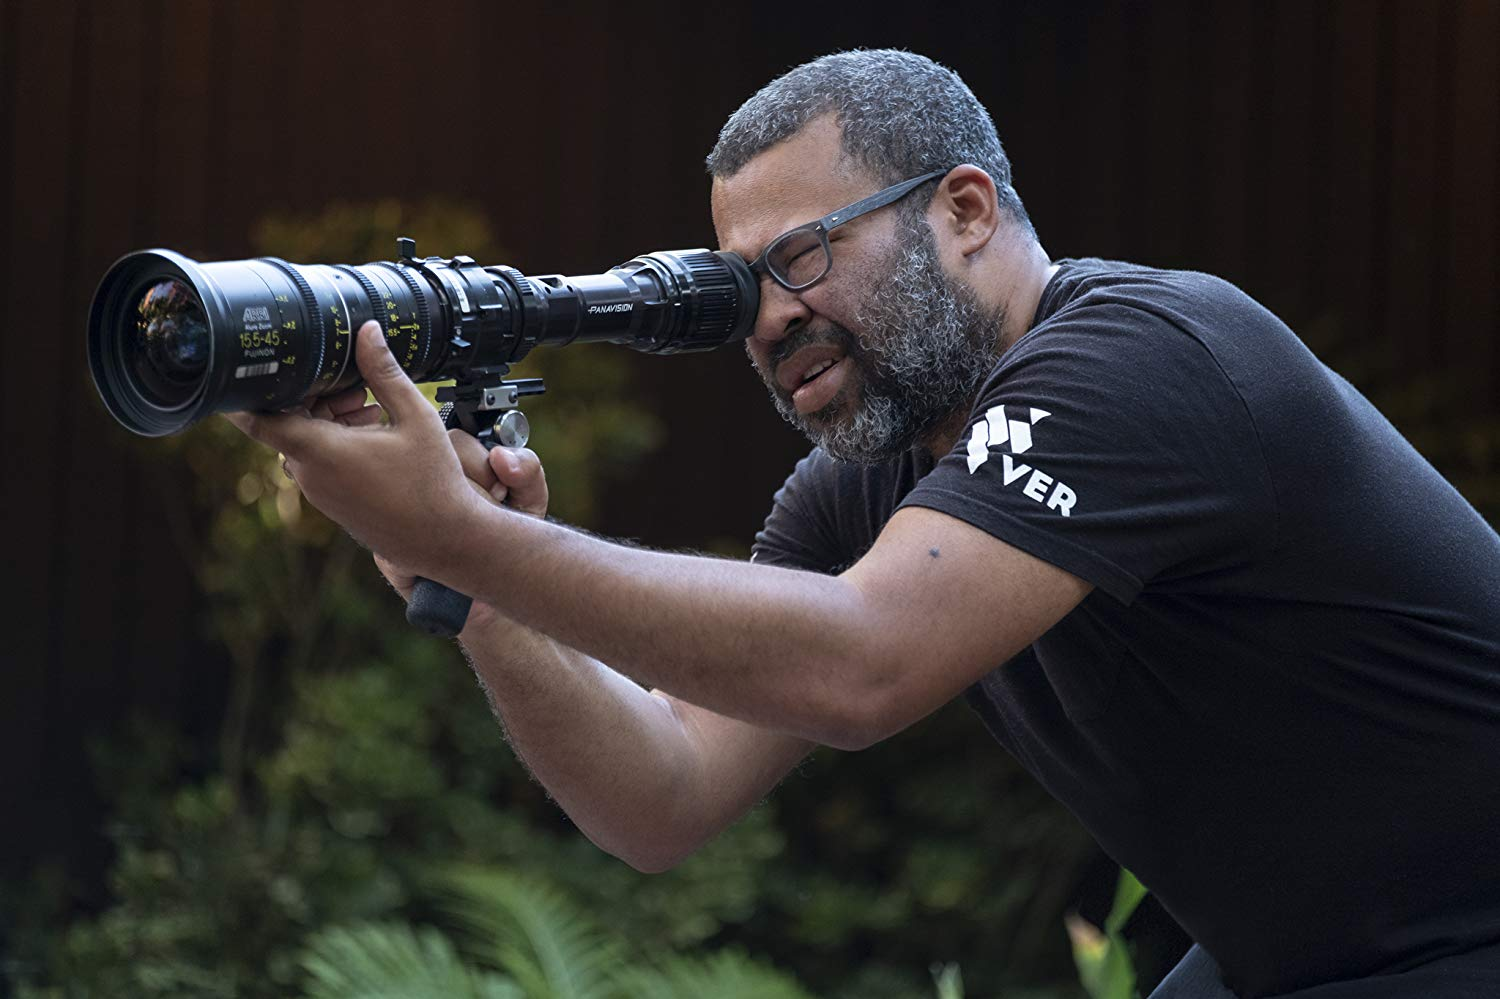 Jordan Peele on set during the filming of 'Us.' Peele is being hailed as an 'auteur' and 'genius.'